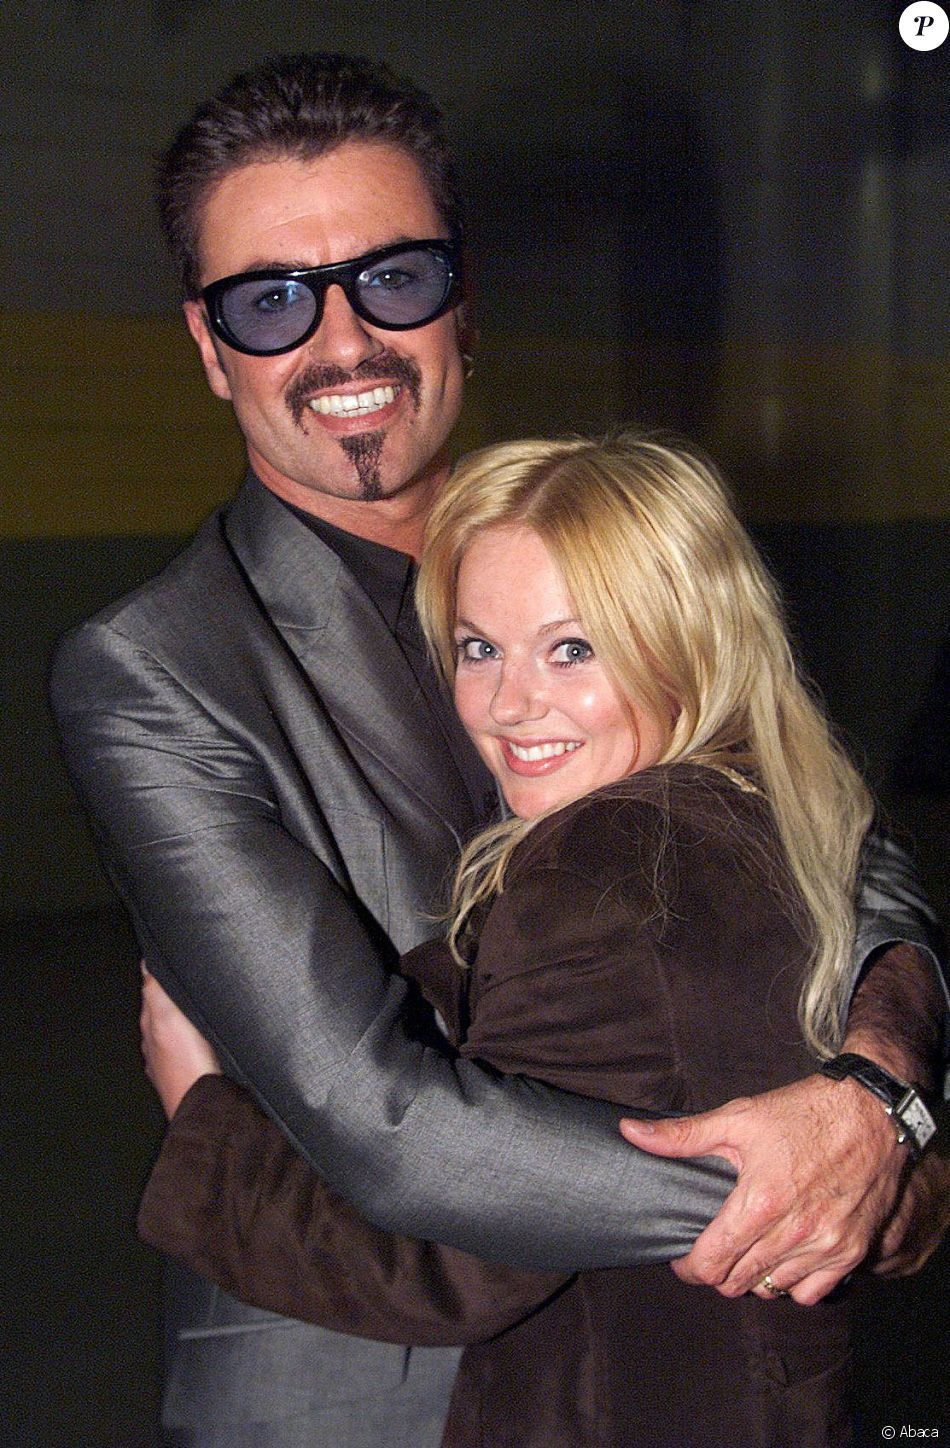 http://www.purepeople.com/media/george-michael-et-geri-halliwell-a-washi_m2935010